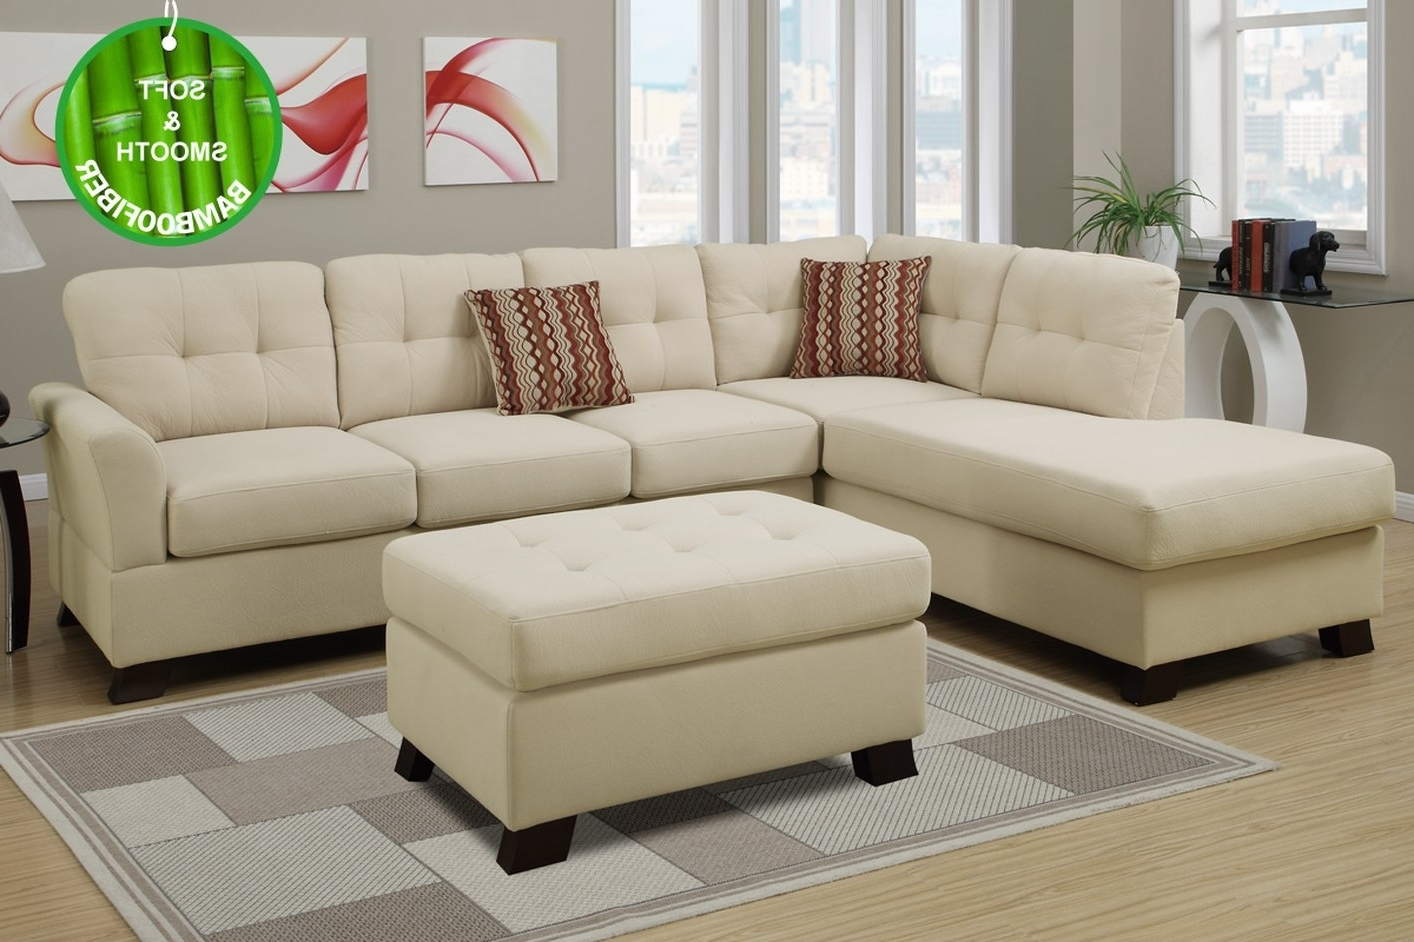 Beige Sectional Sofas For Most Recently Released Beige Fabric Sectional Sofa And Ottoman – Steal A Sofa Furniture (View 4 of 20)